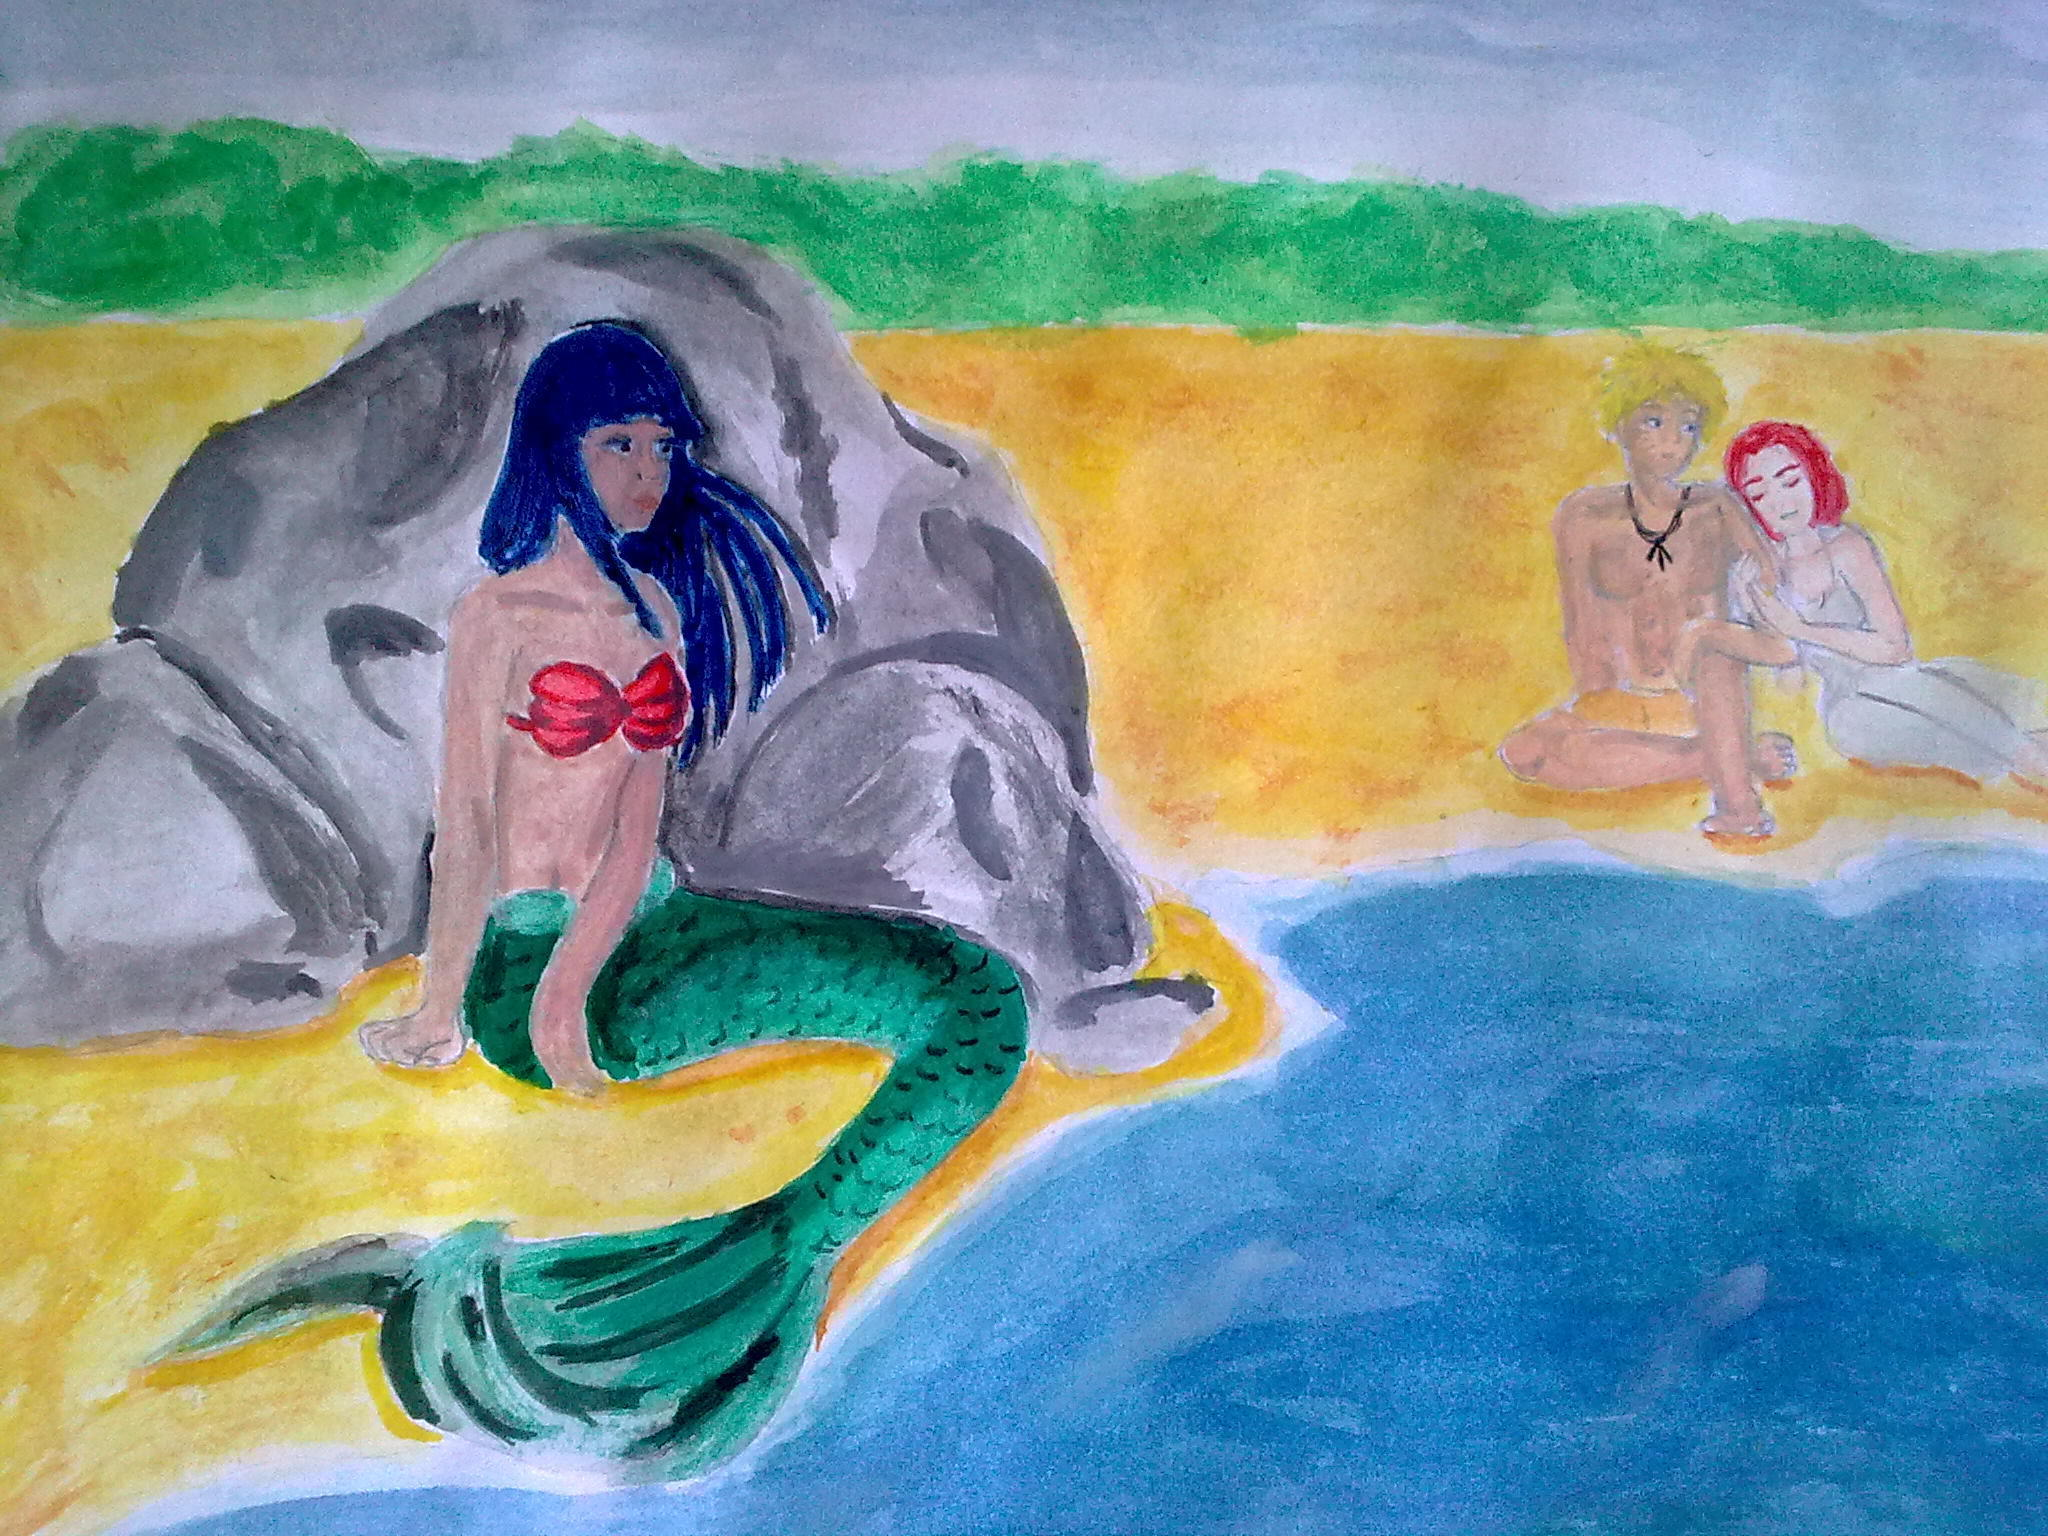 Unhappy mermaid